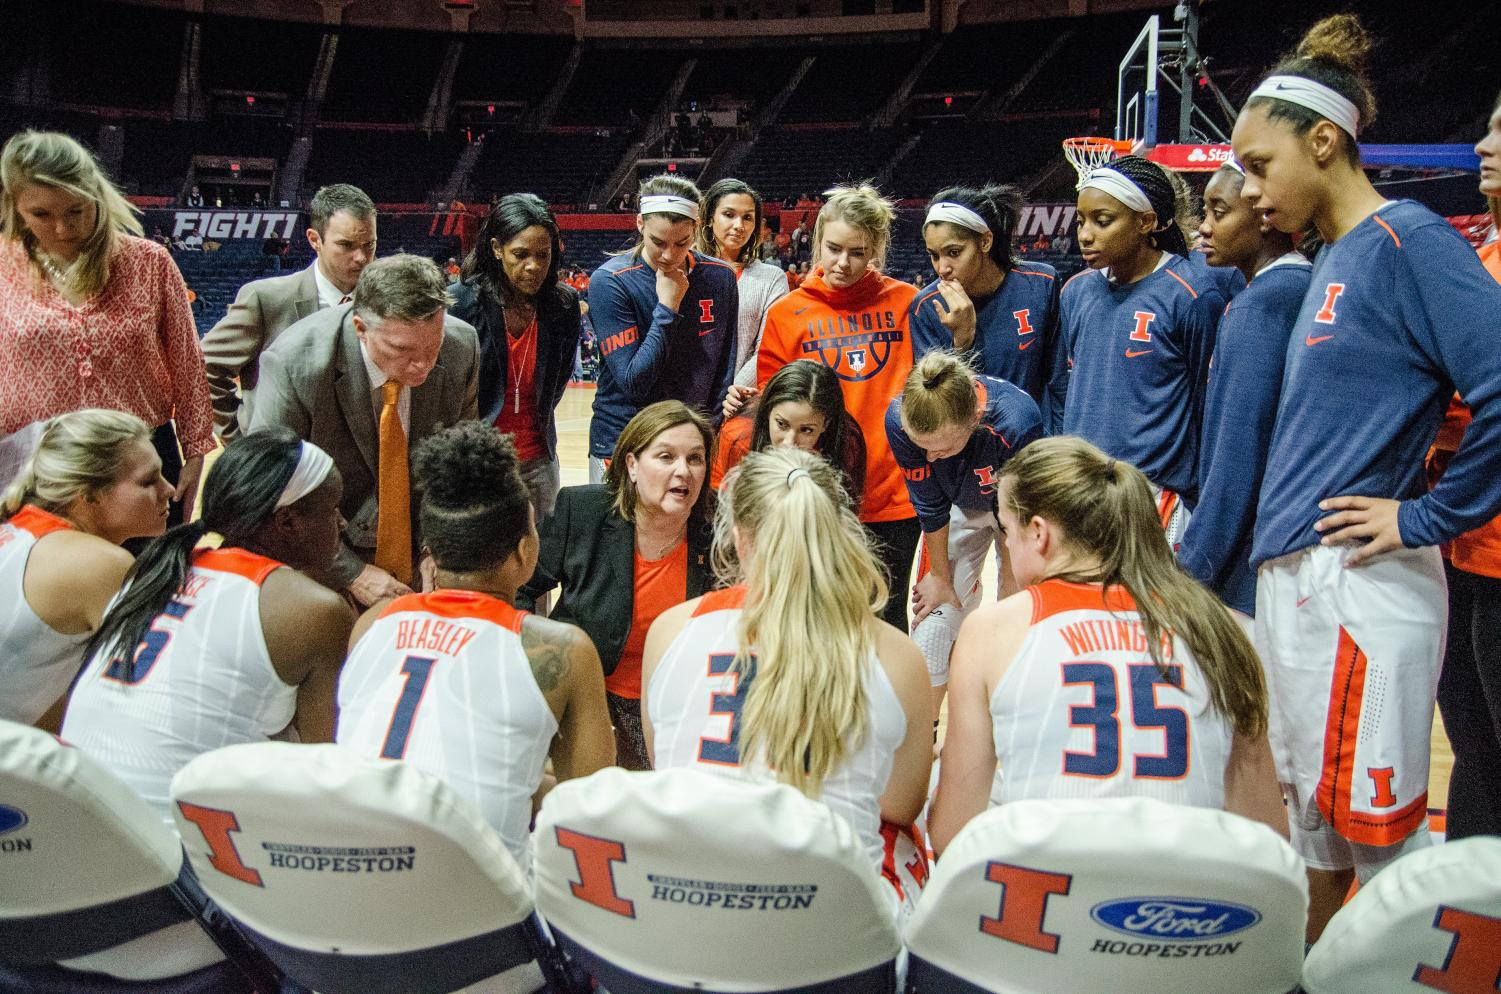 Head coach Nancy Fahey talks with her team before the start of Illinois' game against Michigan State on Jan. 16. Illinois fell to Michigan State 67-55. The Illini look to build off a season where they finished at the bottom of the Big Ten.